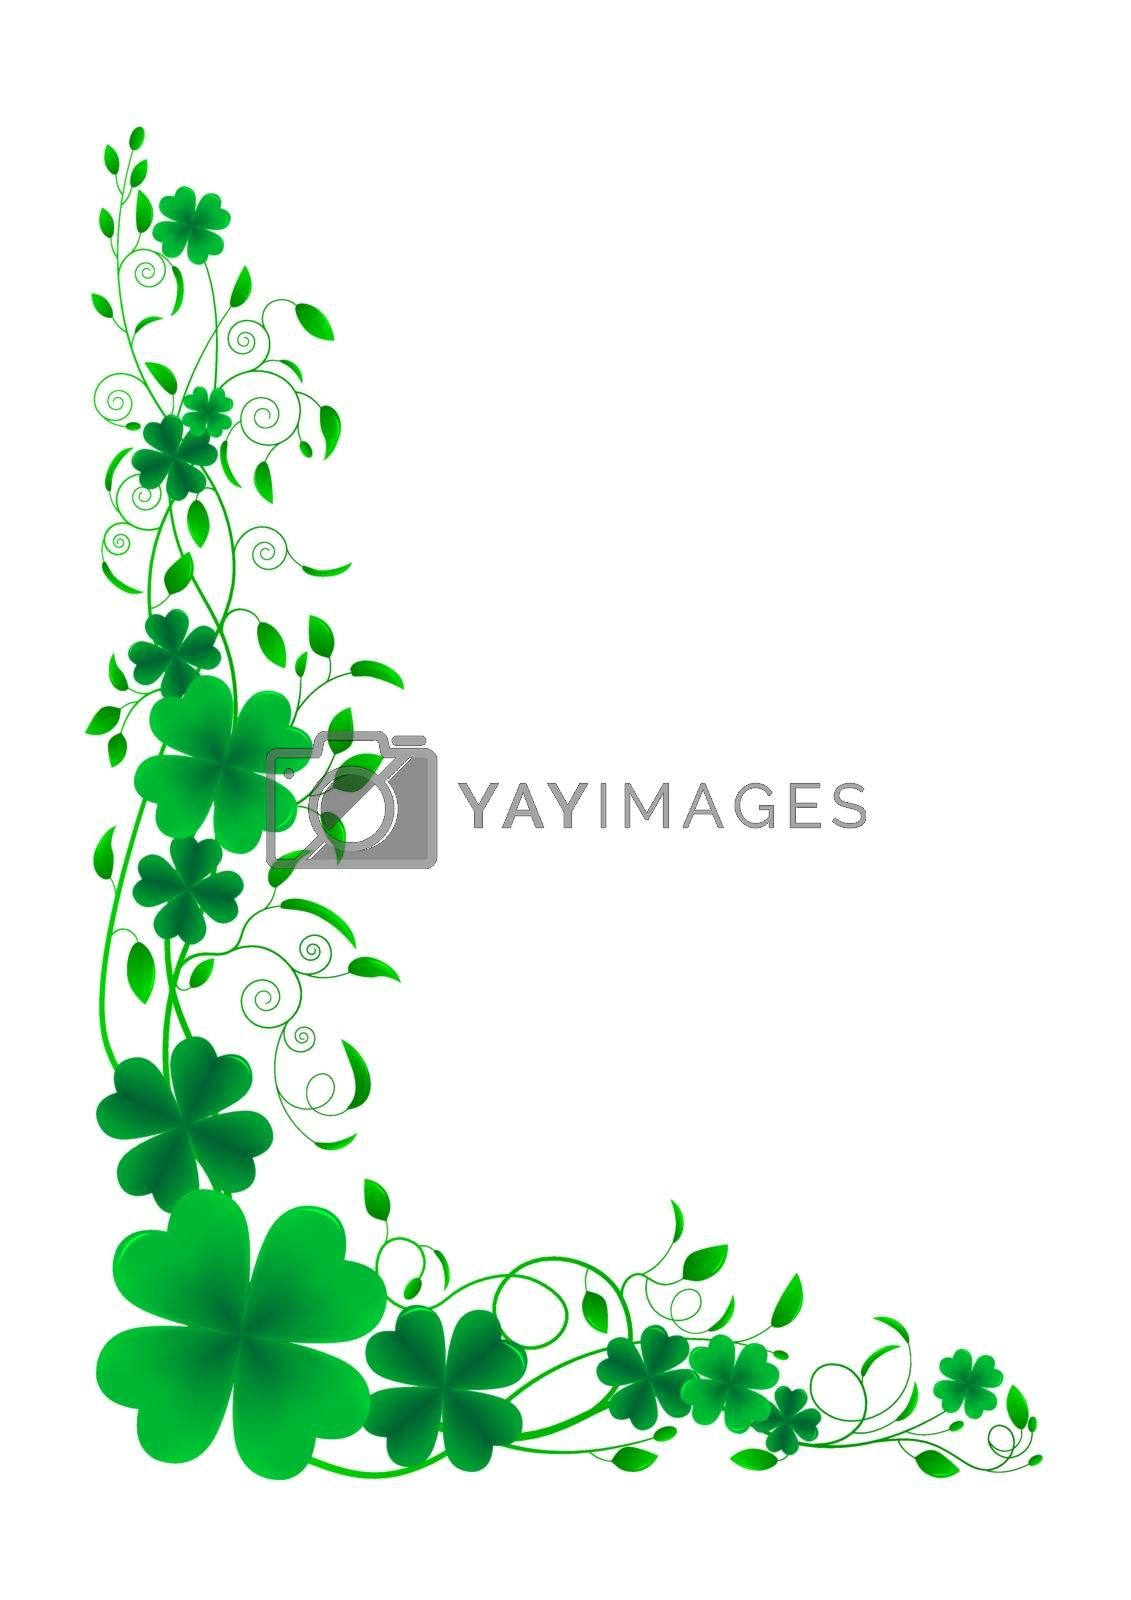 Floral ornament leaf clover on a white background.